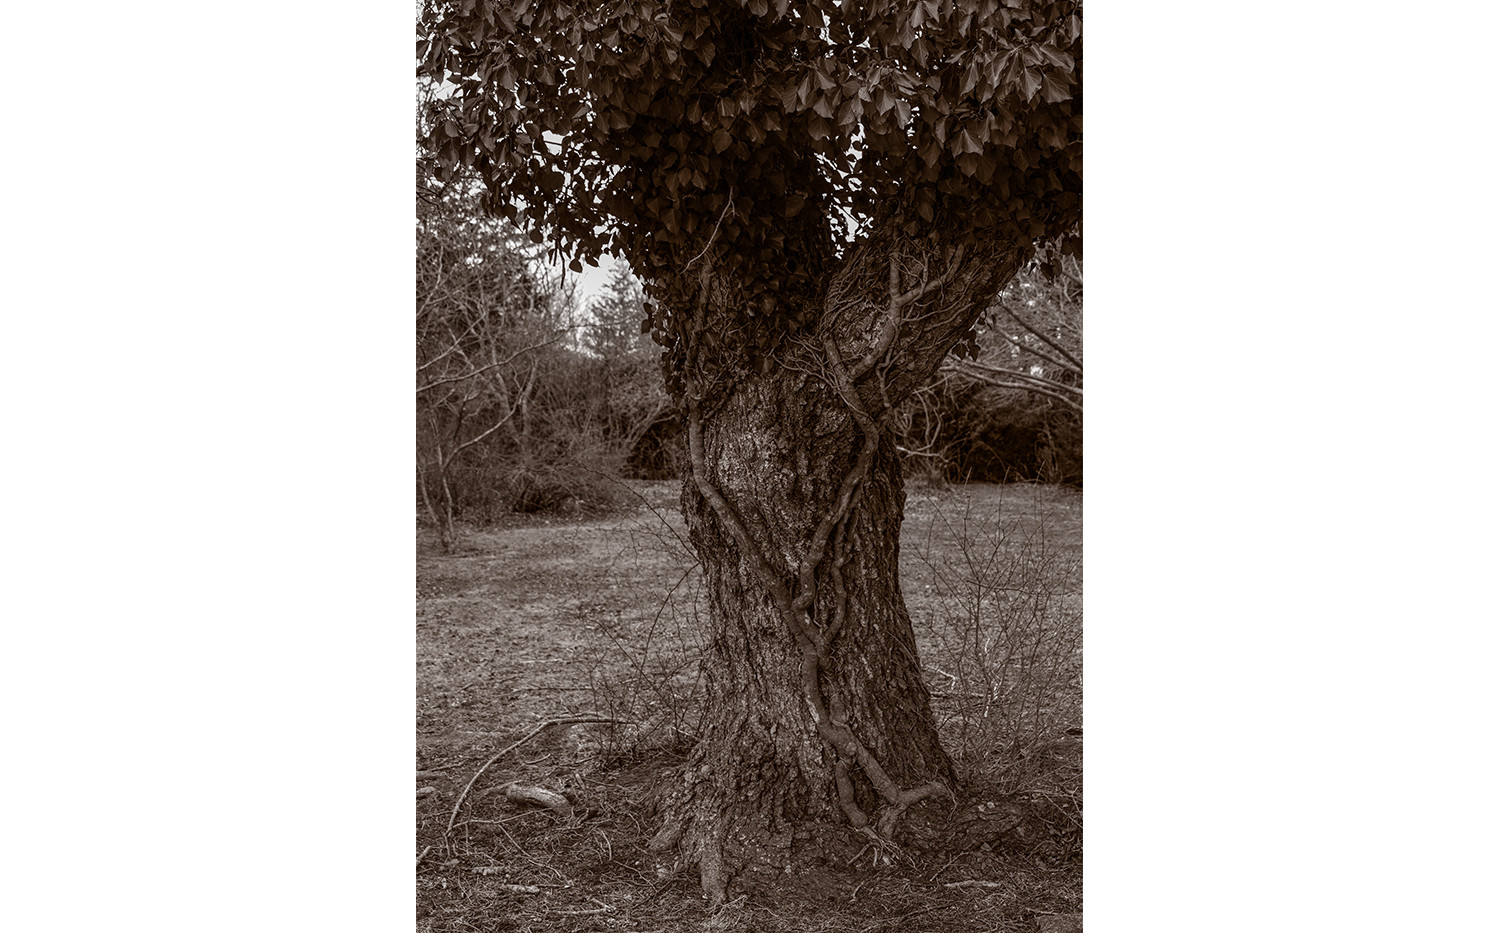 Old tree with vines